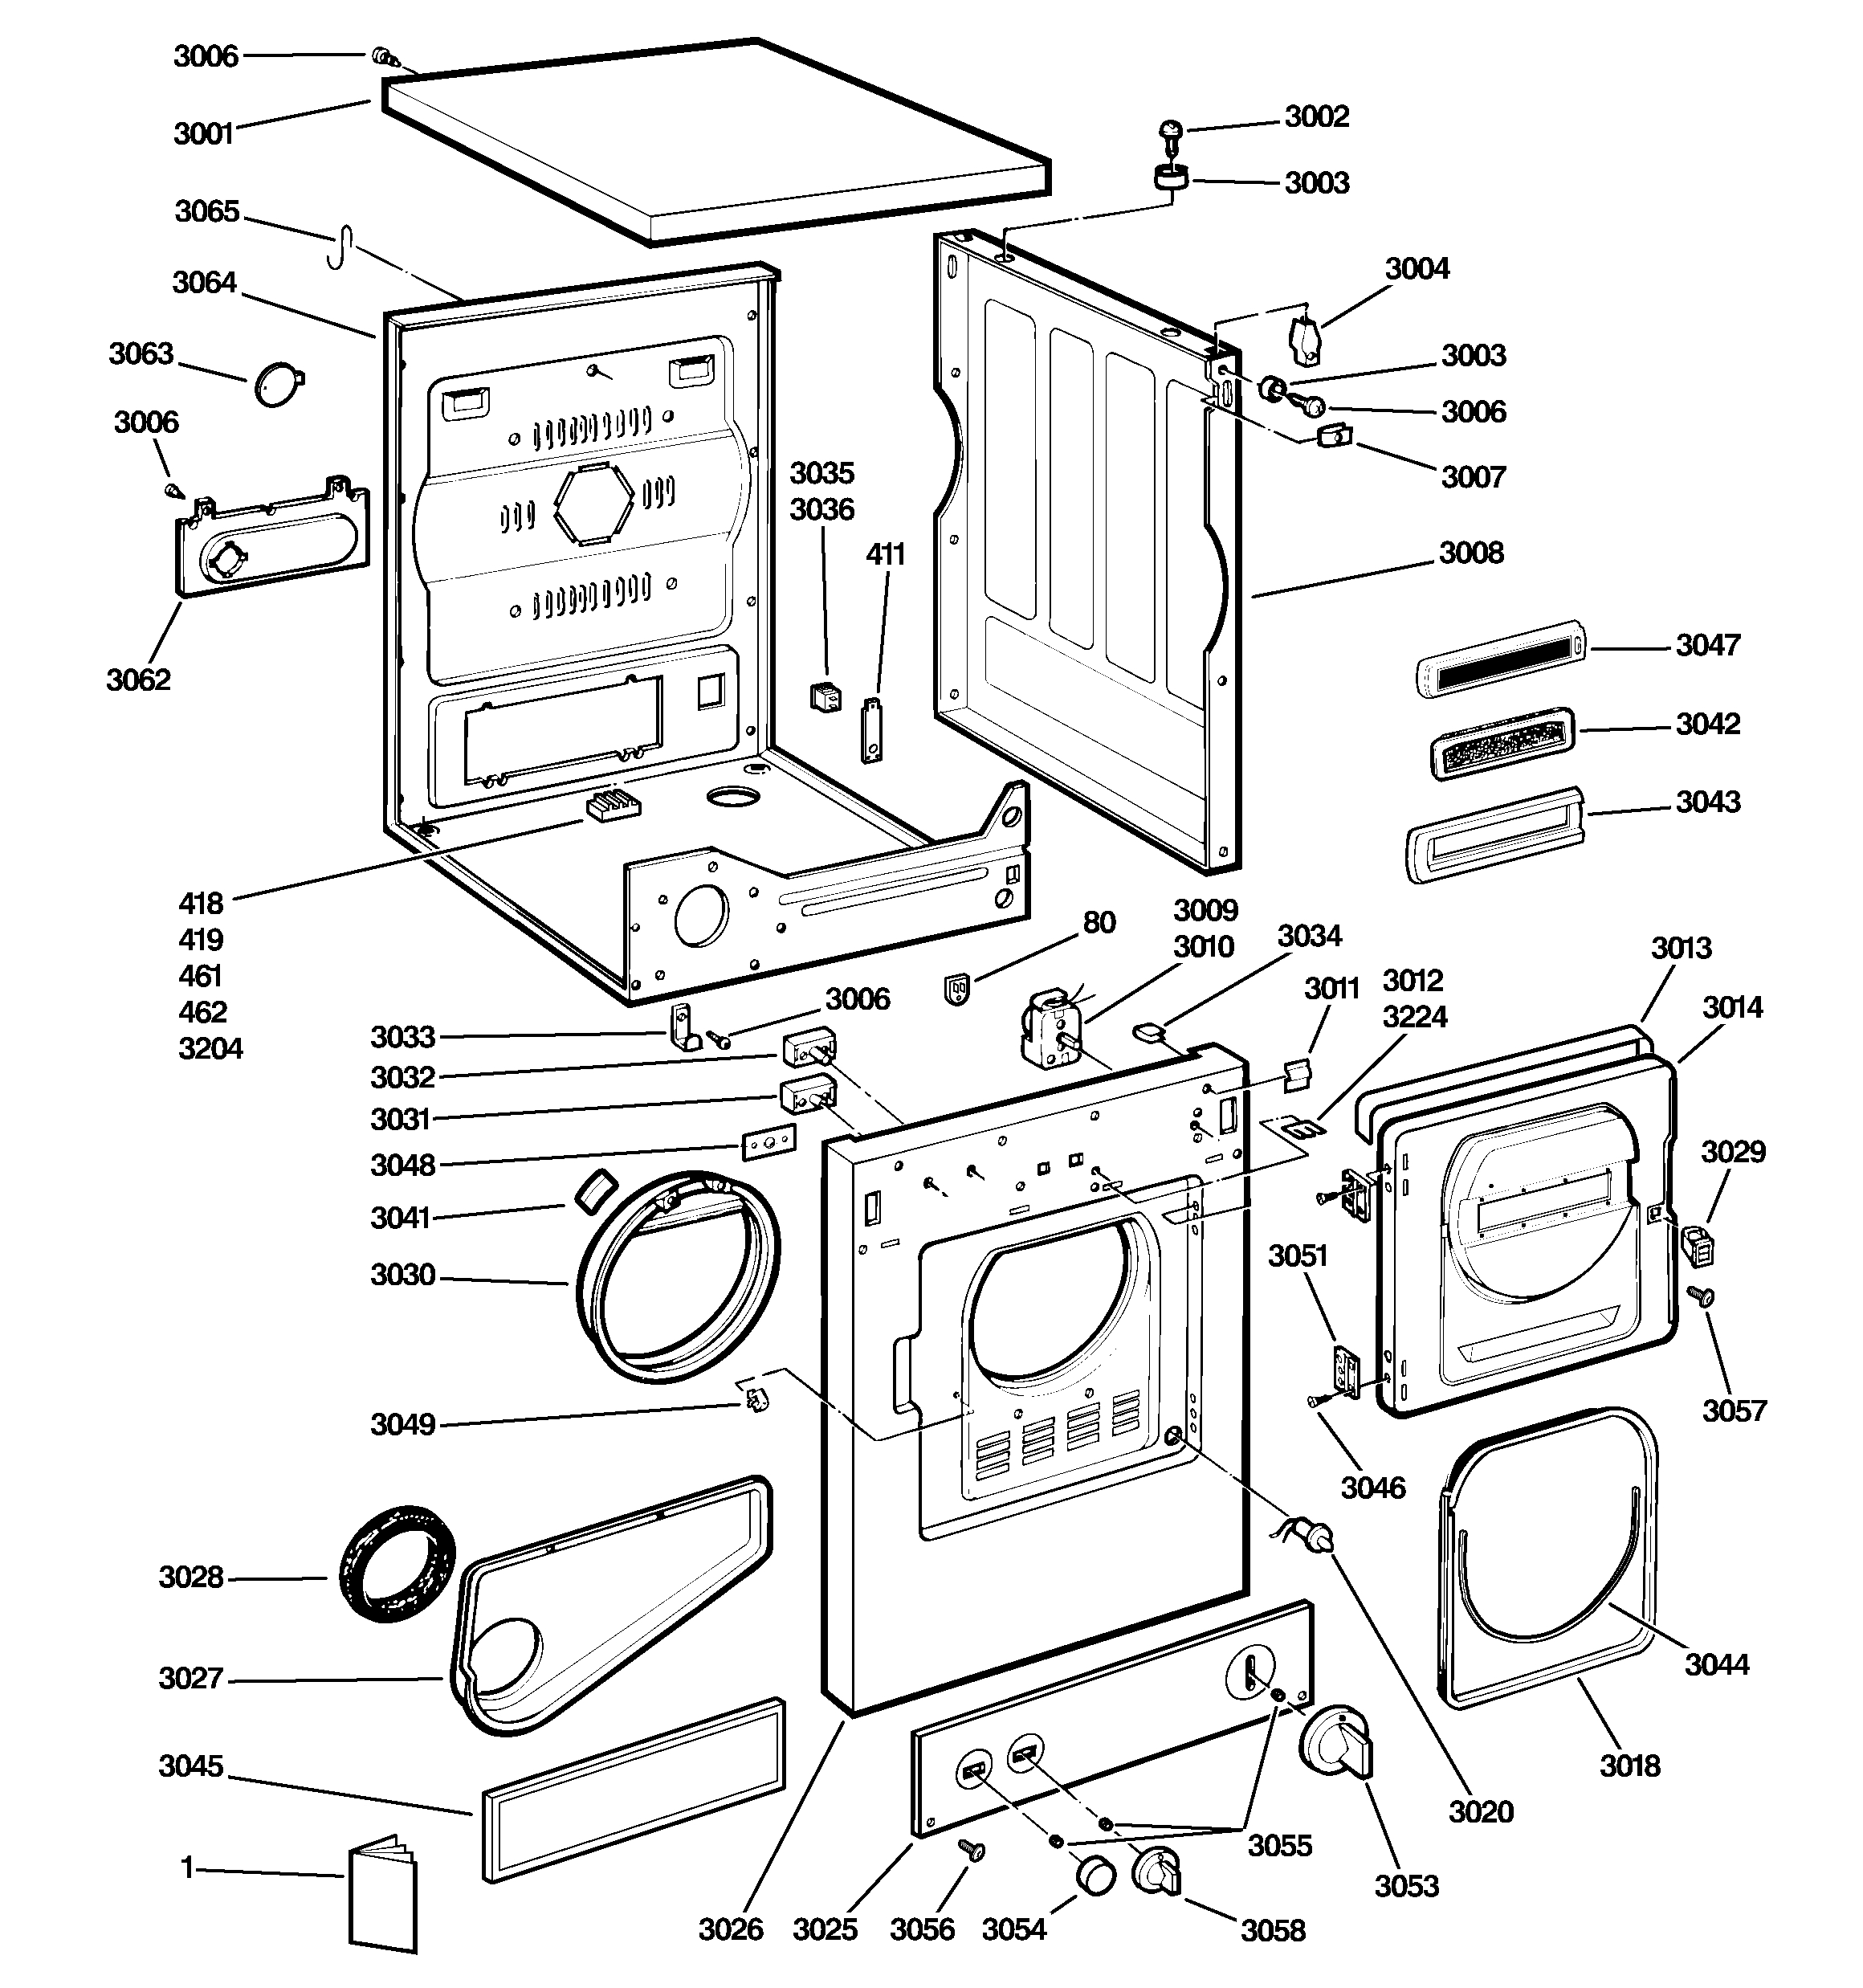 [DIAGRAM] Maytag Dryer Diagrams FULL Version HD Quality